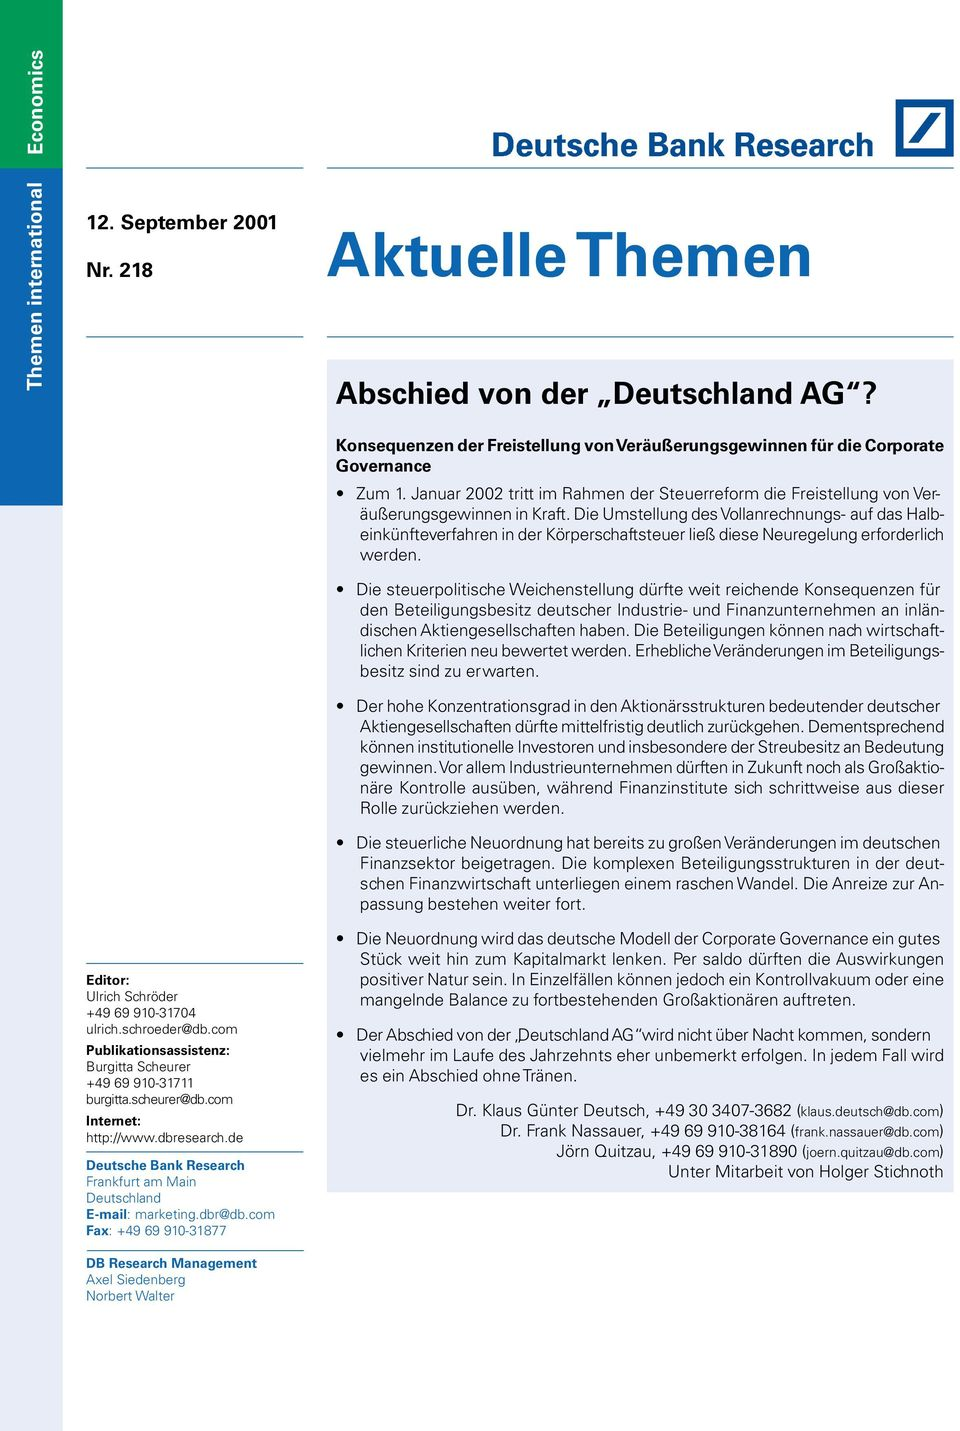 com Fax: +49 69 910-31877 DB Research Management Axel Siedenberg Norbert Walter Konsequenzen der Freistellung von Veräußerungsgewinnen für die Corporate Governance Zum 1.